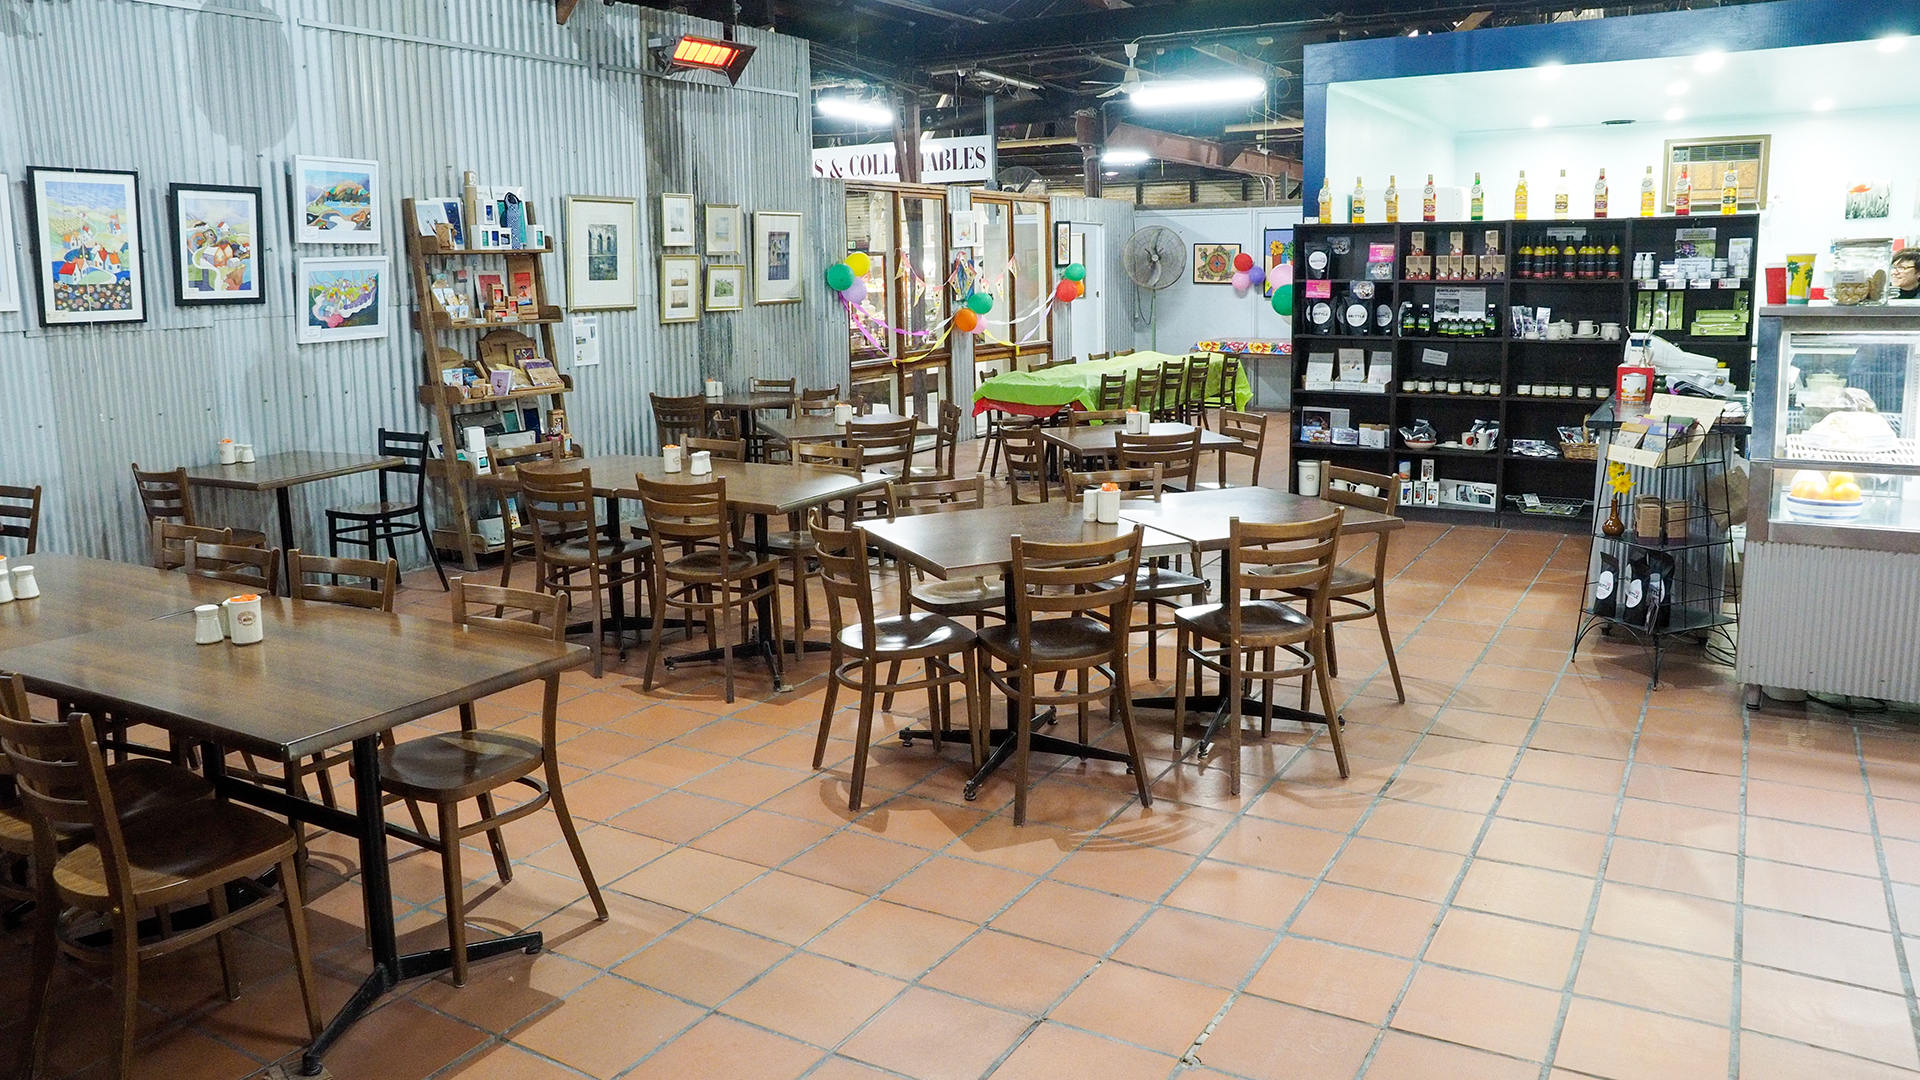 The cafe at Bendigo Pottery is accessible